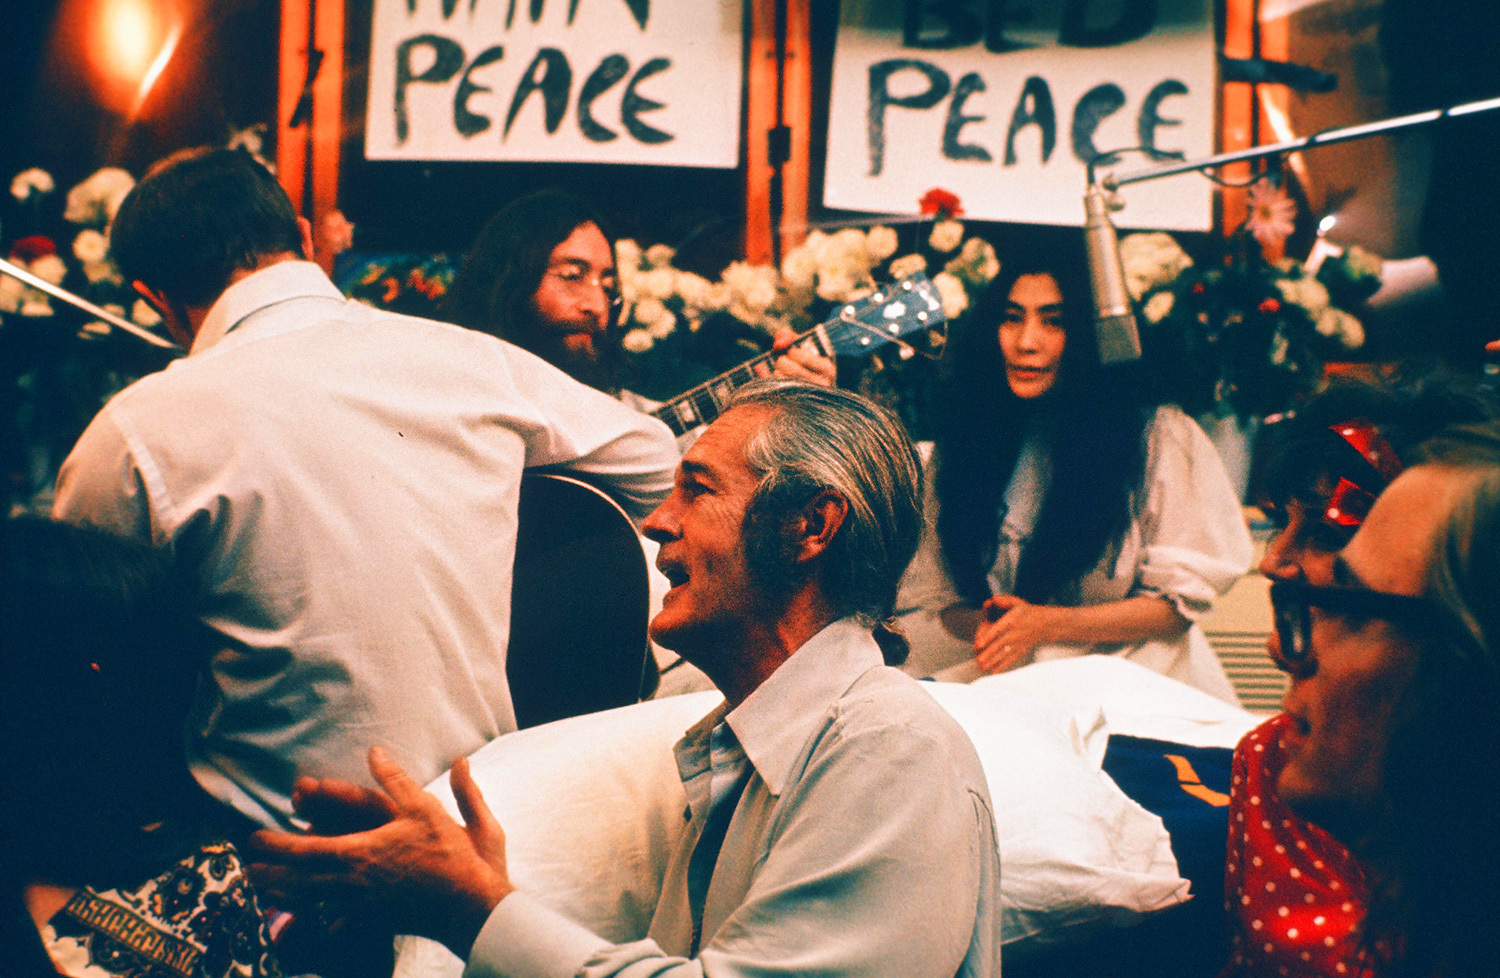 """John Lennon and Yoko Ono recorded """"Give Peace a Chance"""" during protest movements of the 60s (Photo by Roy Kerwood/ Creative Commons 2.5 )"""